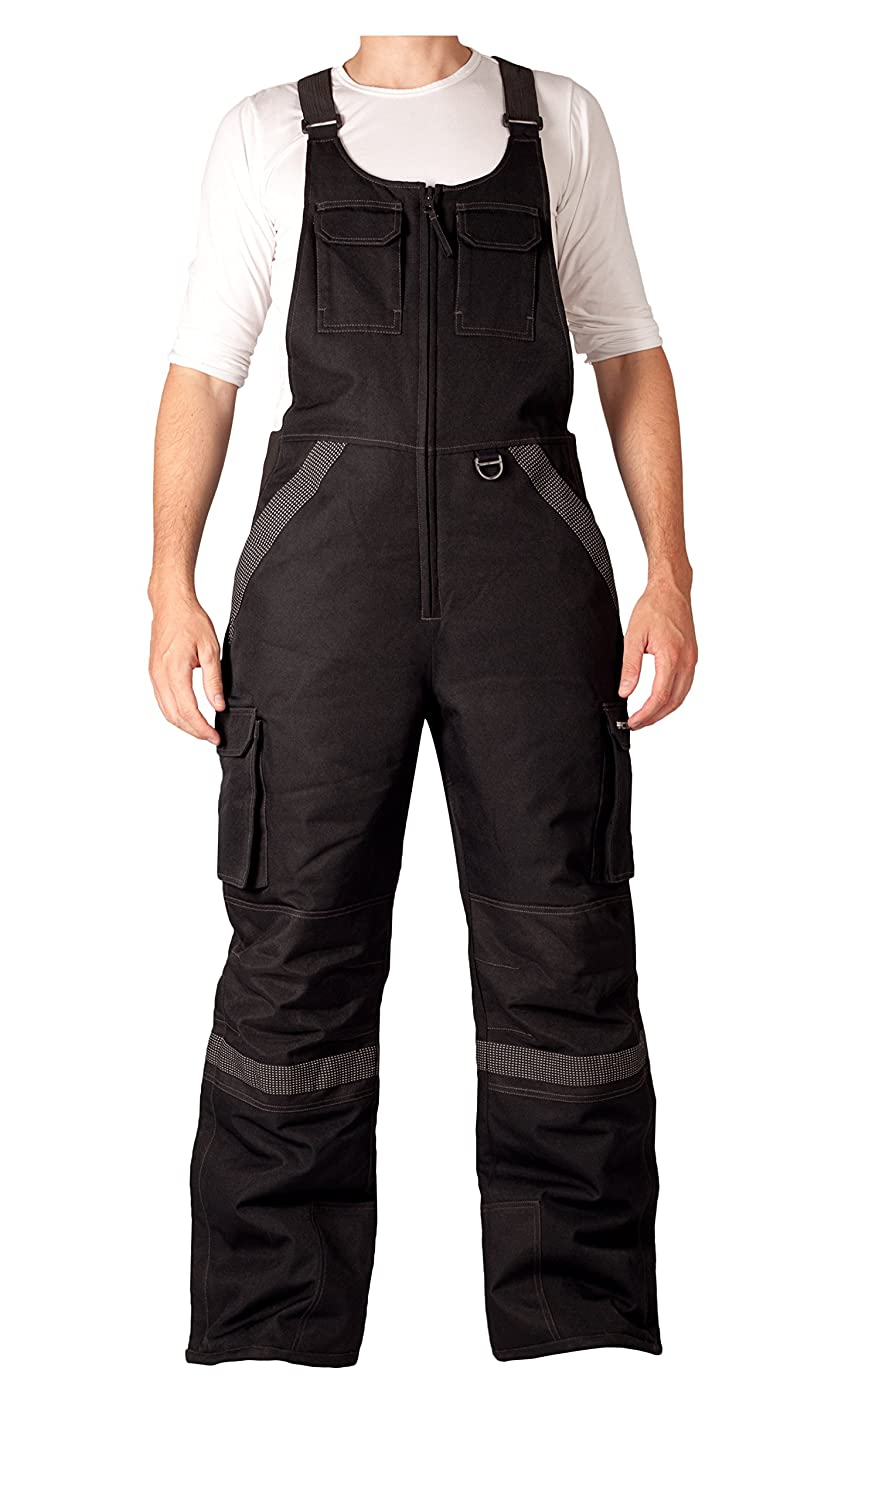 Arctix Men's Overalls Tundra Bib With Added Visibility 8002